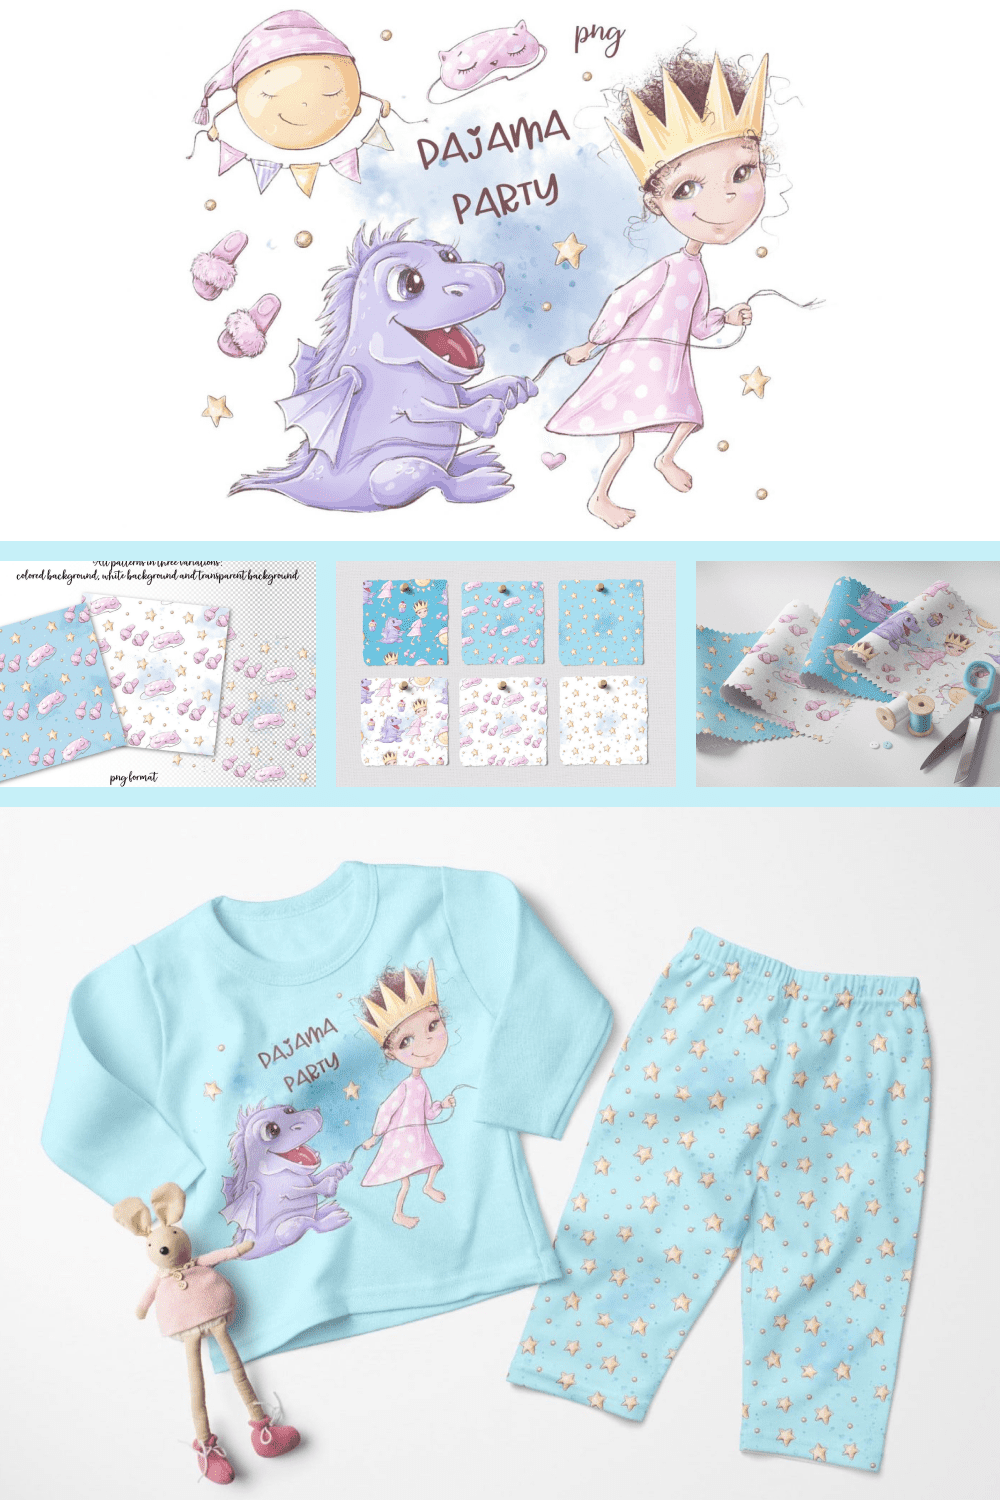 Pajama Party Clipart and Seamless - MasterBundles - Pinterest Collage Image.